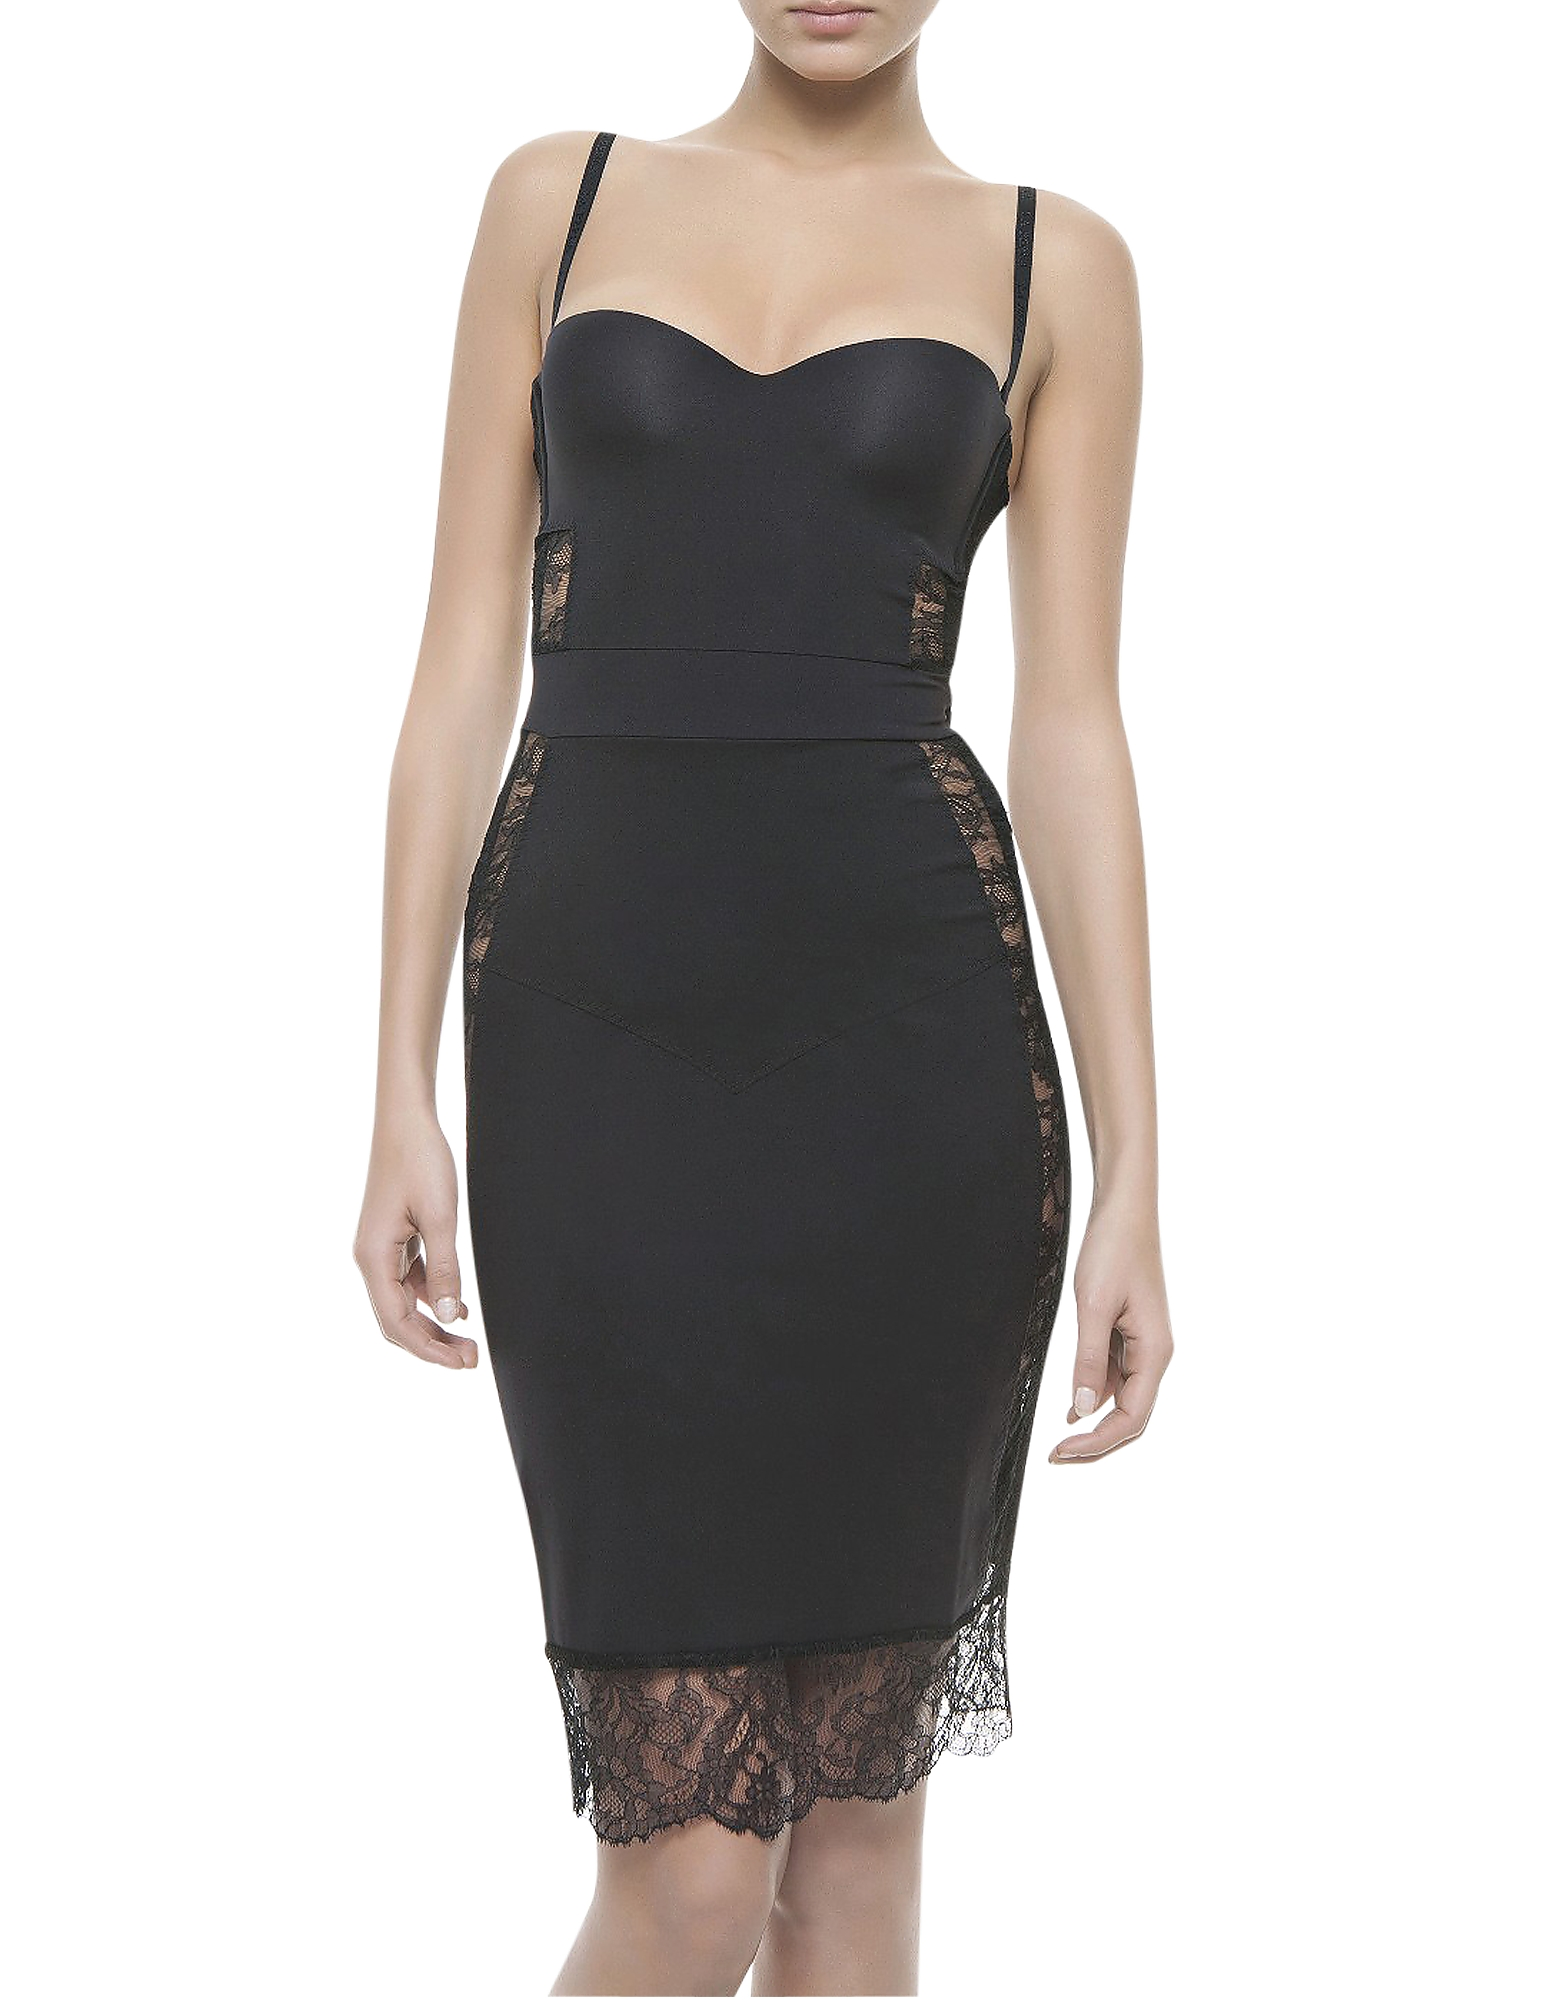 La Perla Designer Slips  Babydolls Black Lycra ShapeAllure Dress